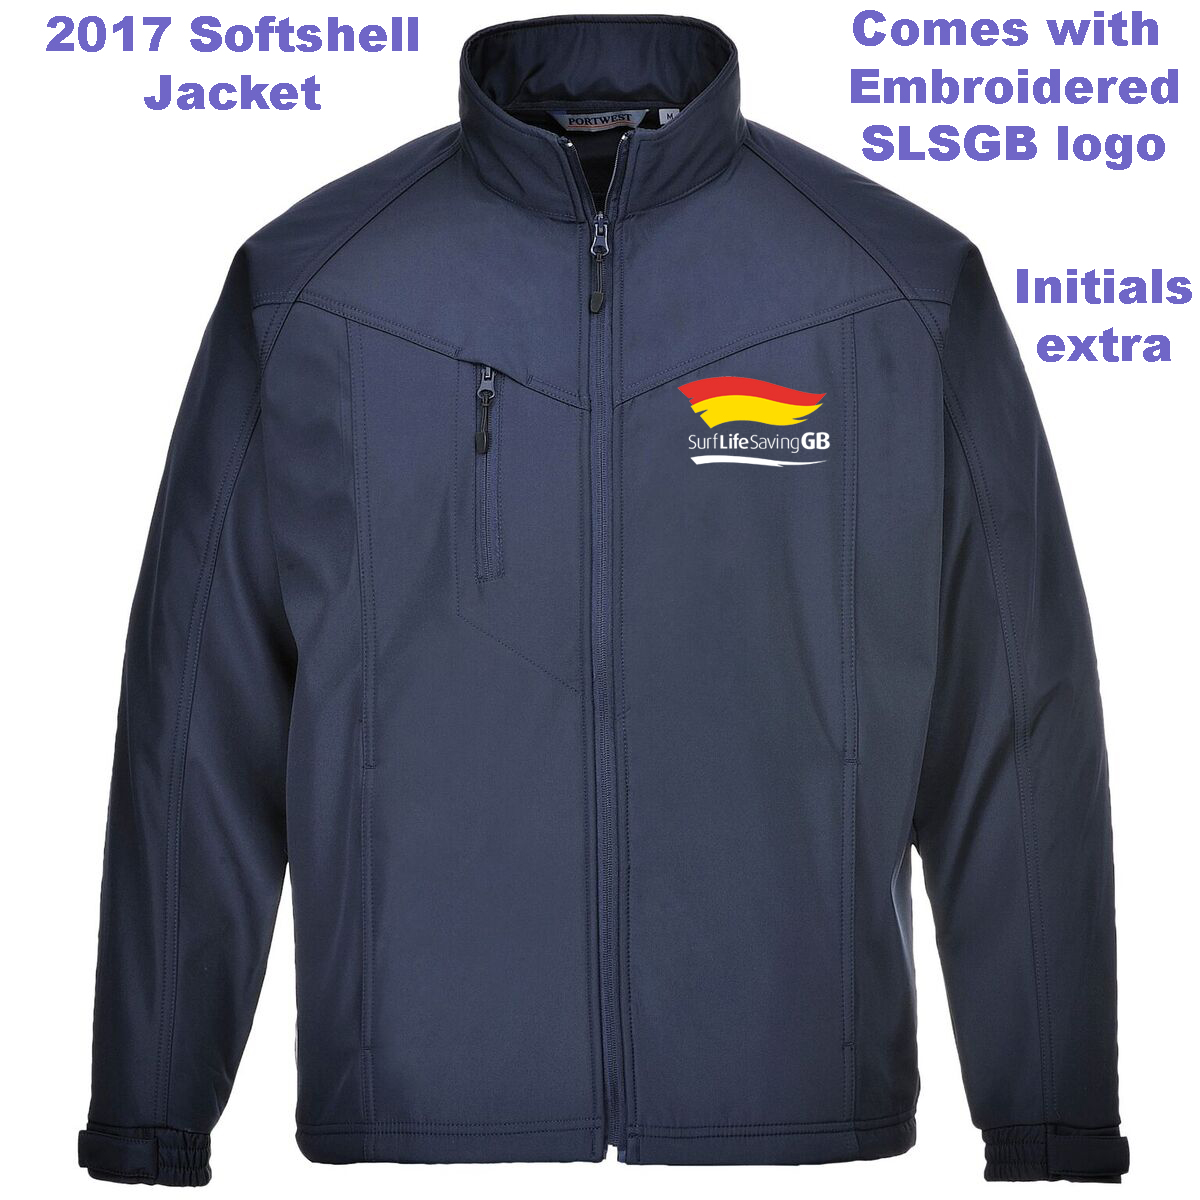 SLSGB Soft Shell Jacket PW163